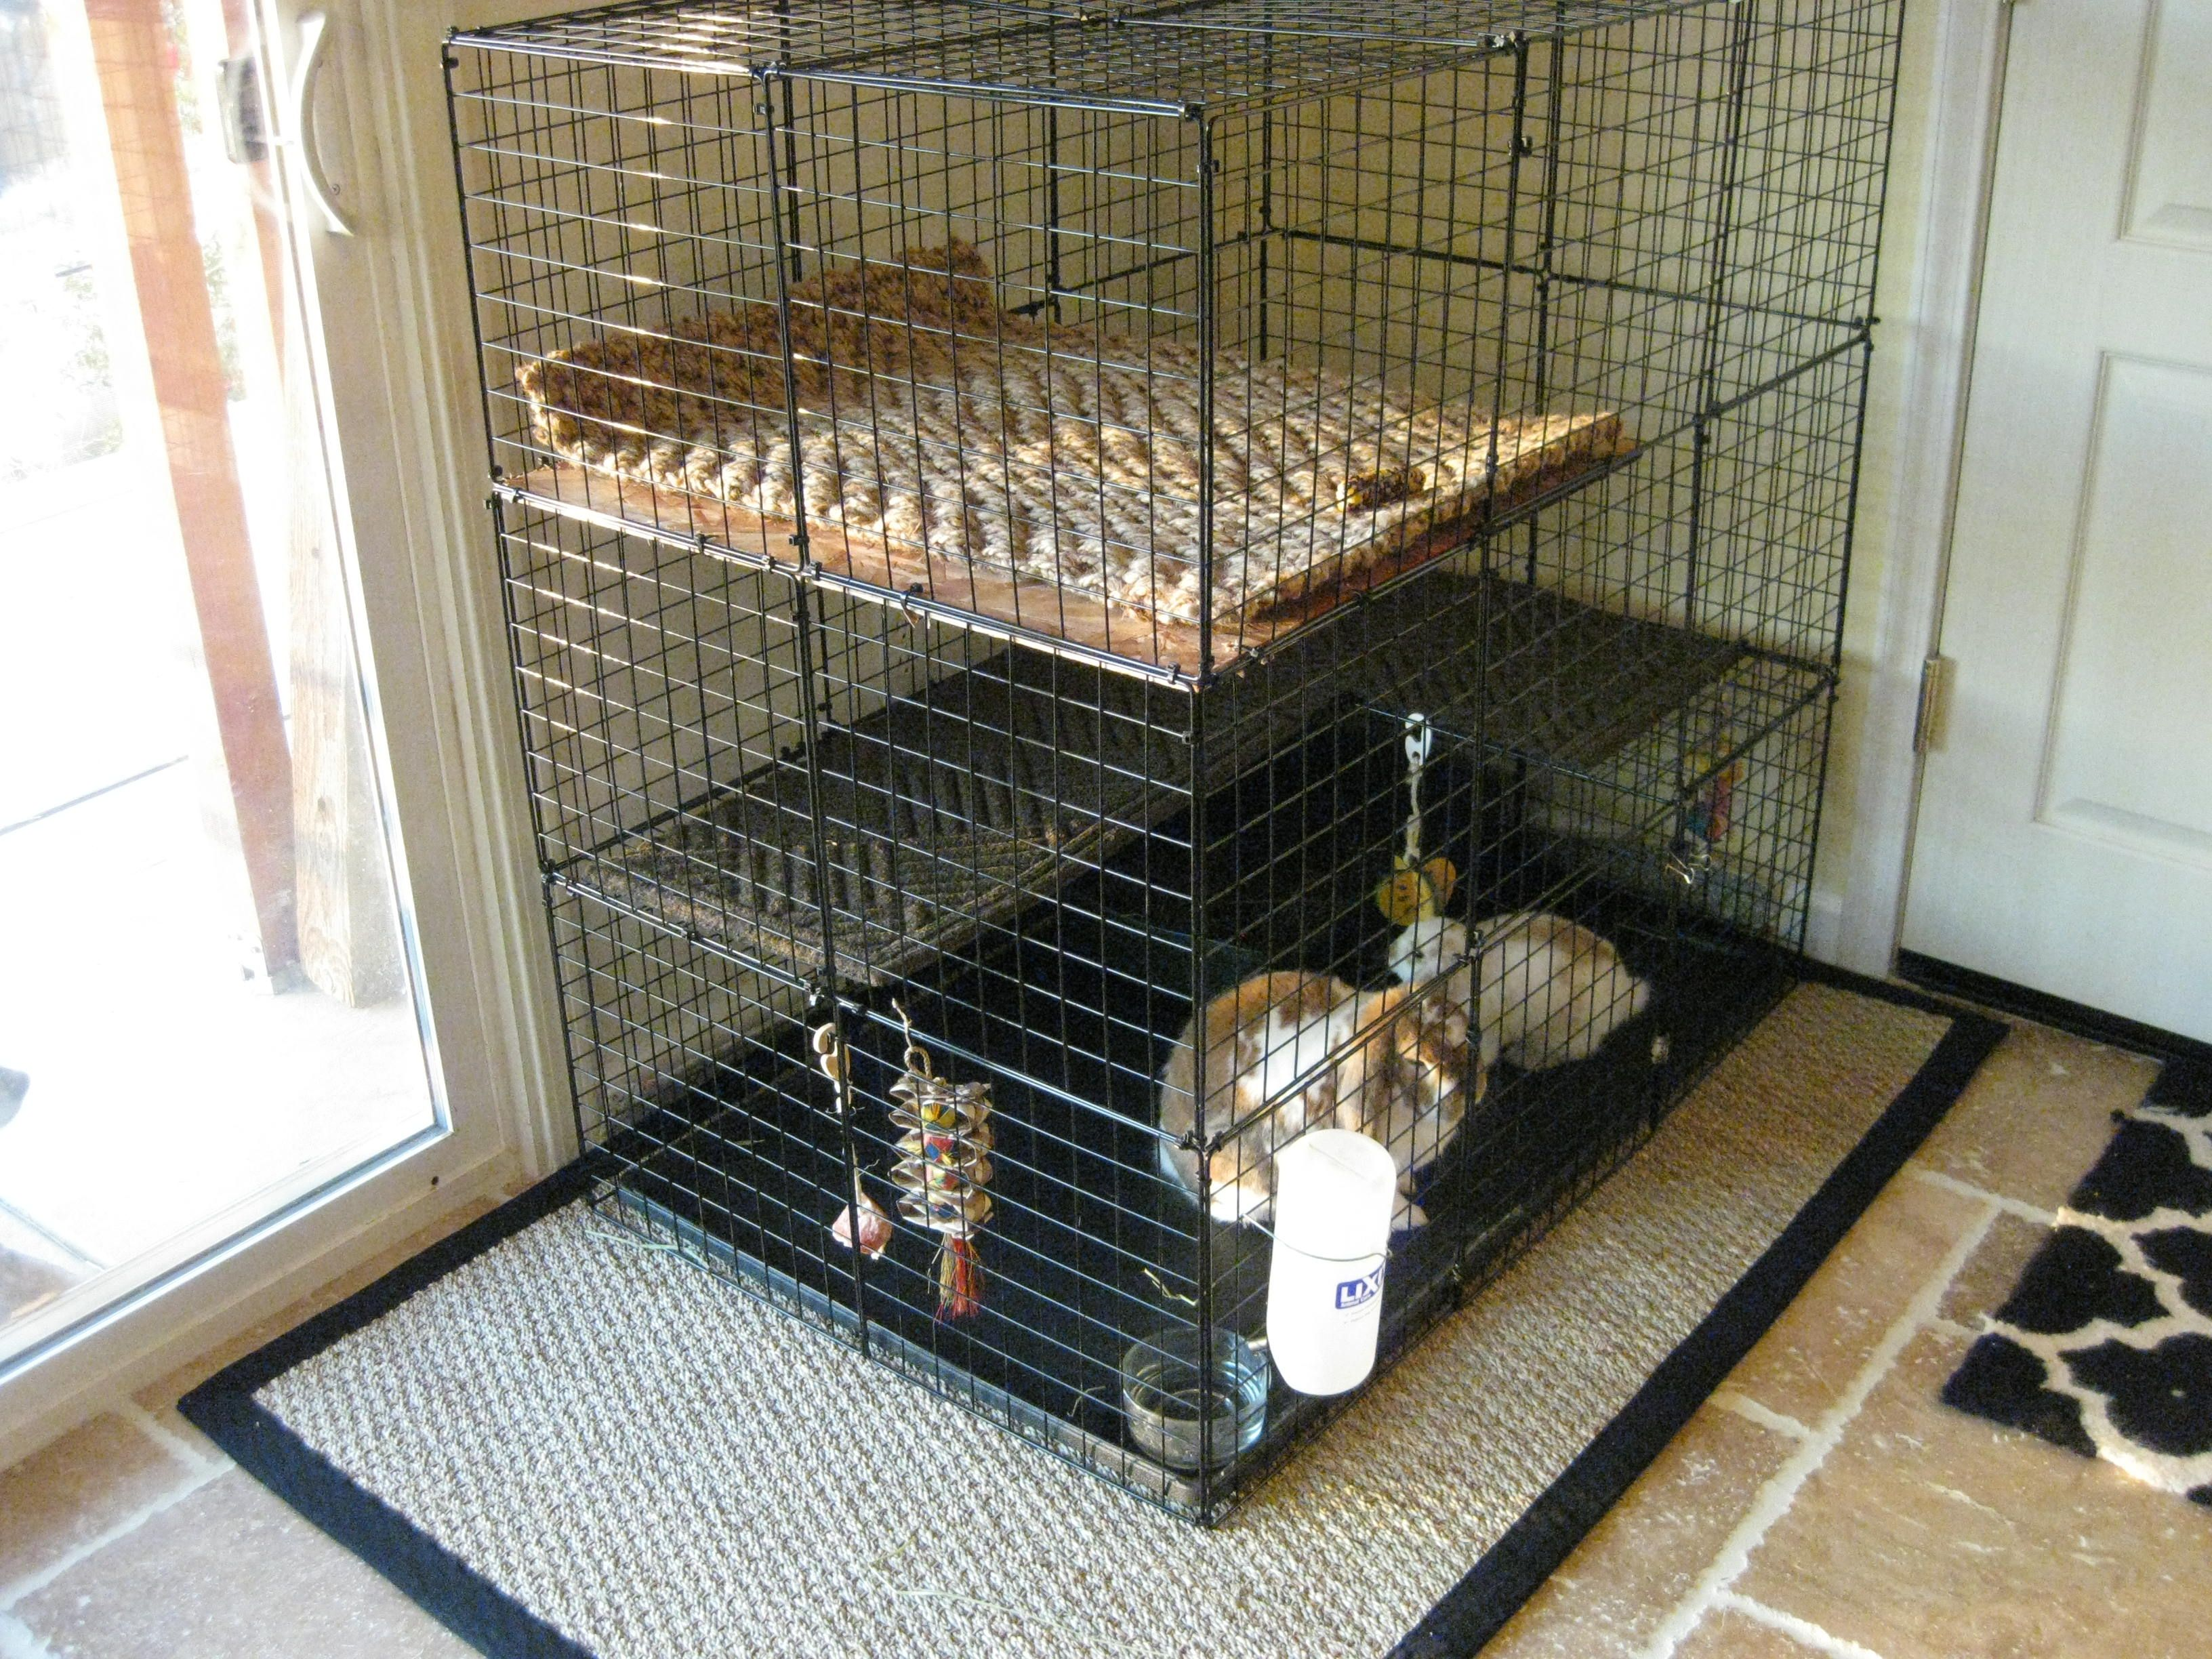 tasteful c c cage i used a dog crate replacement tray to. Black Bedroom Furniture Sets. Home Design Ideas